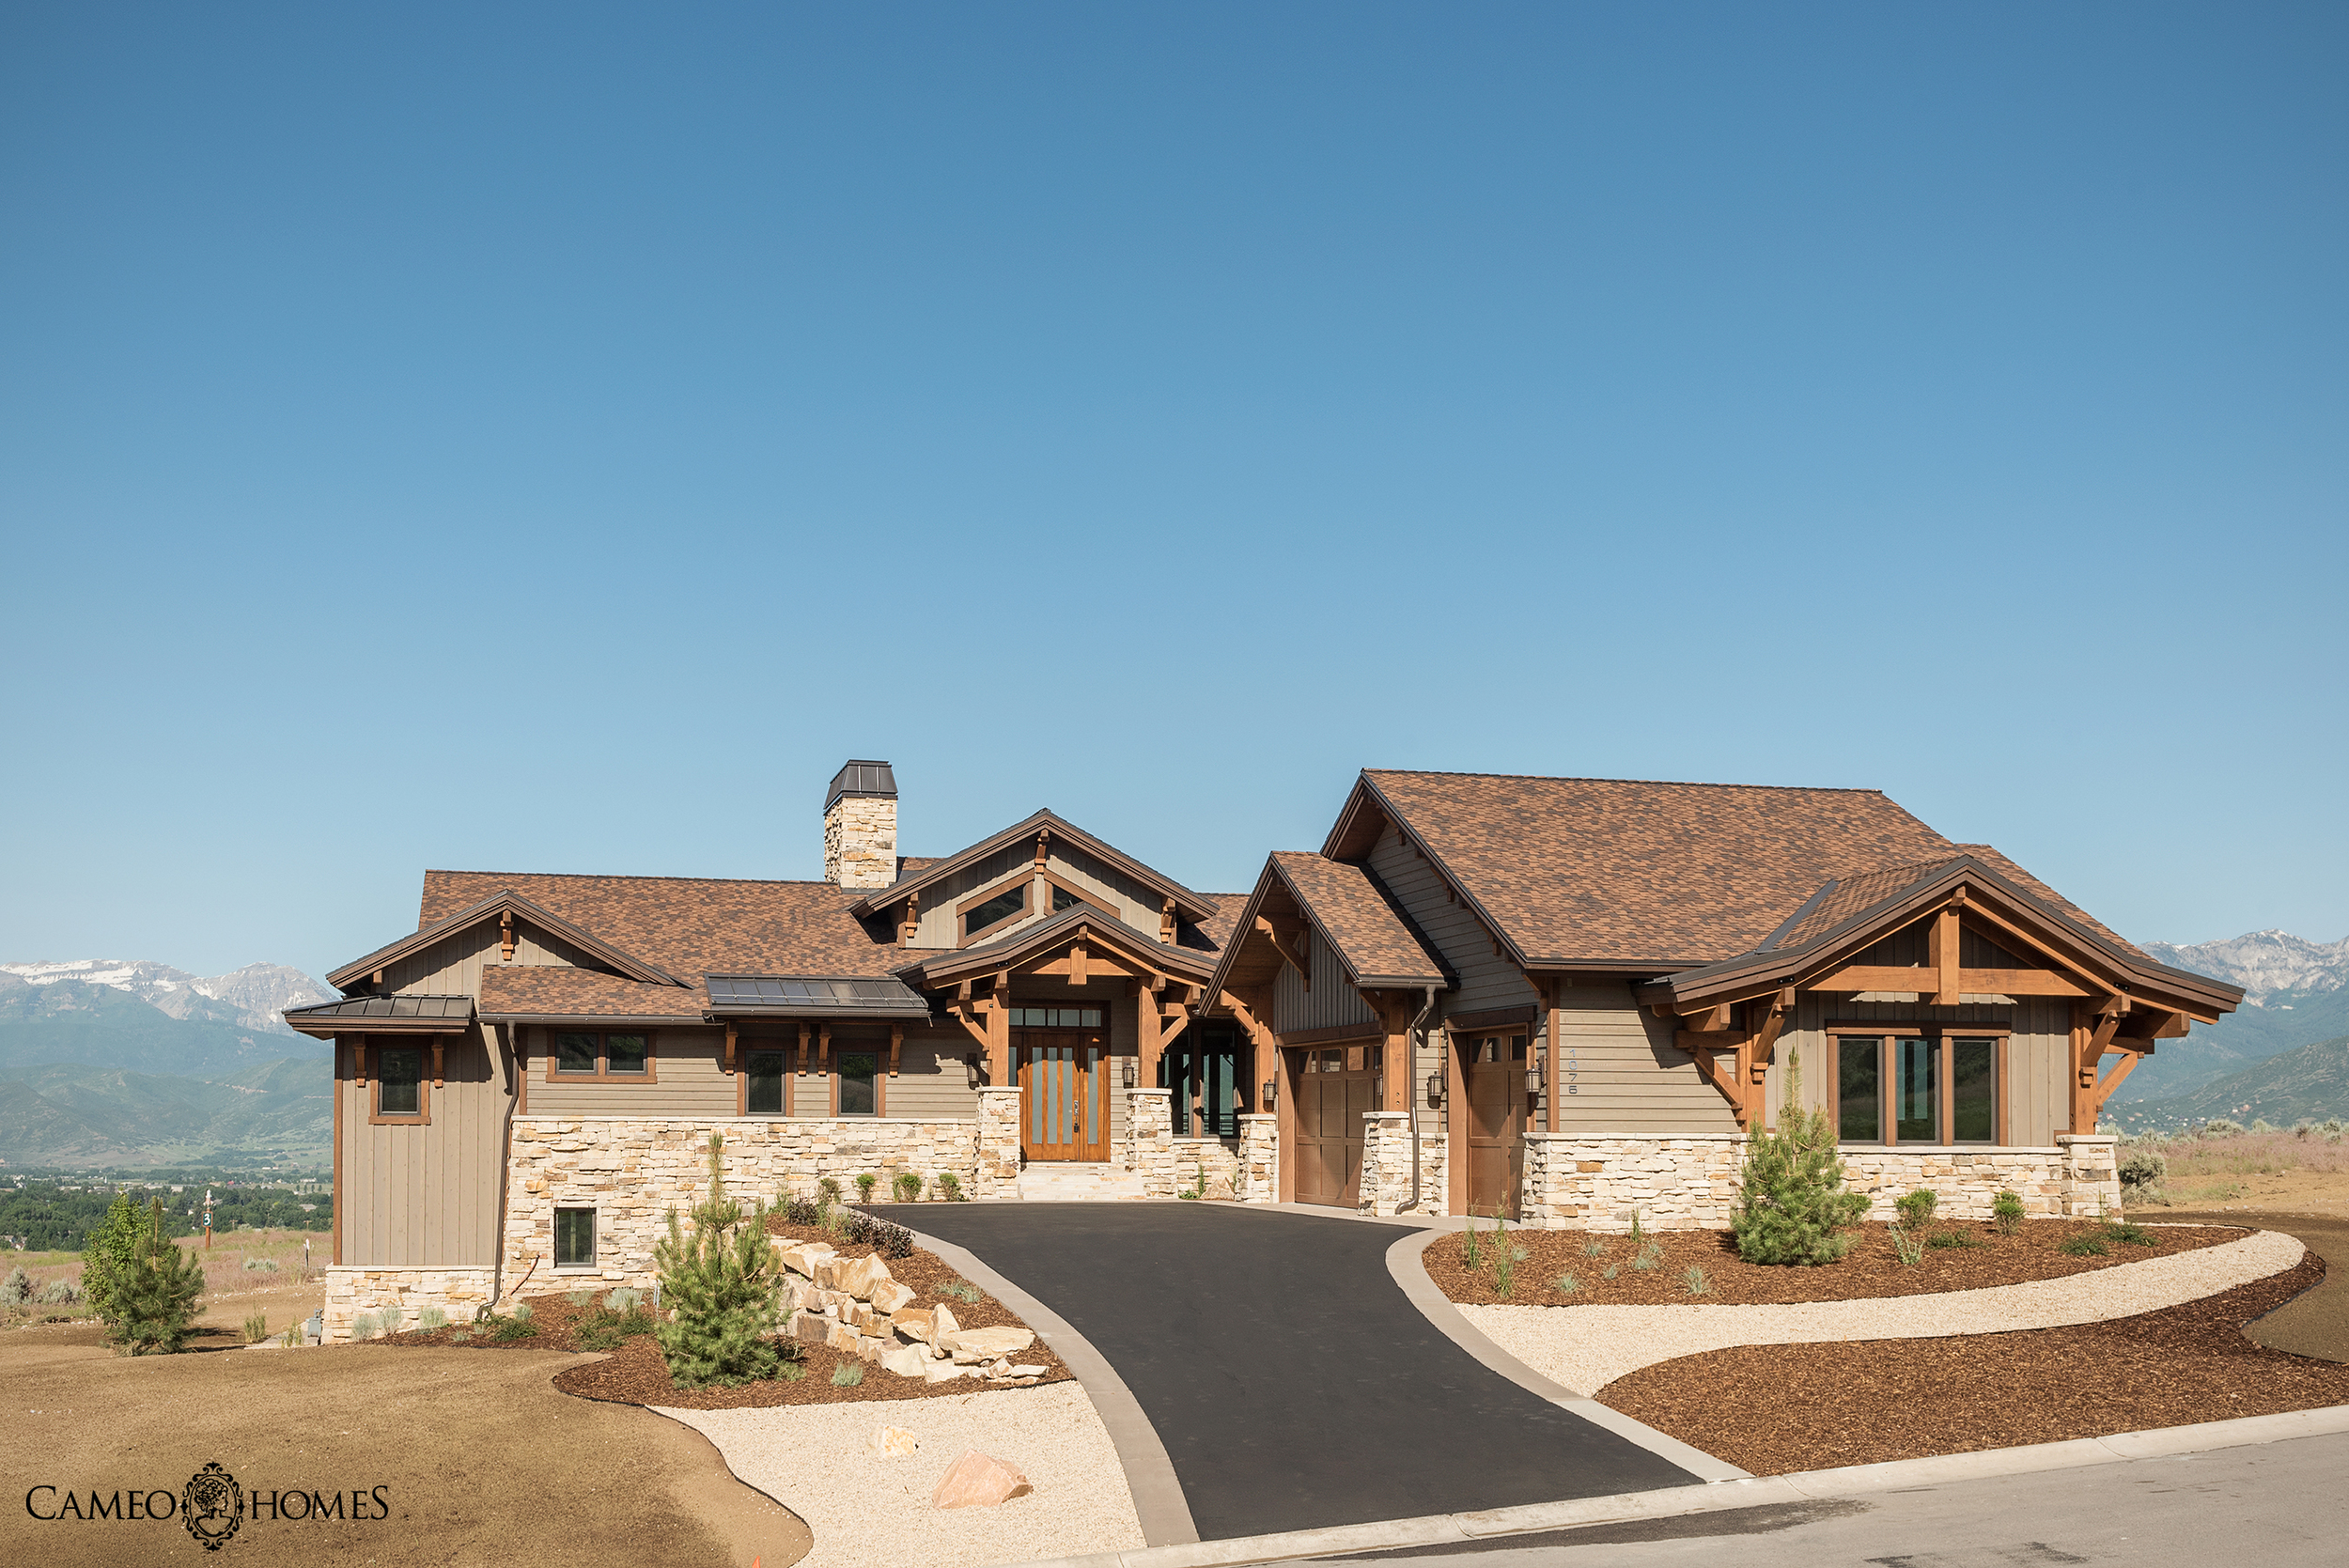 Park City Luxury Home Builders, Cameo Homes Inc.